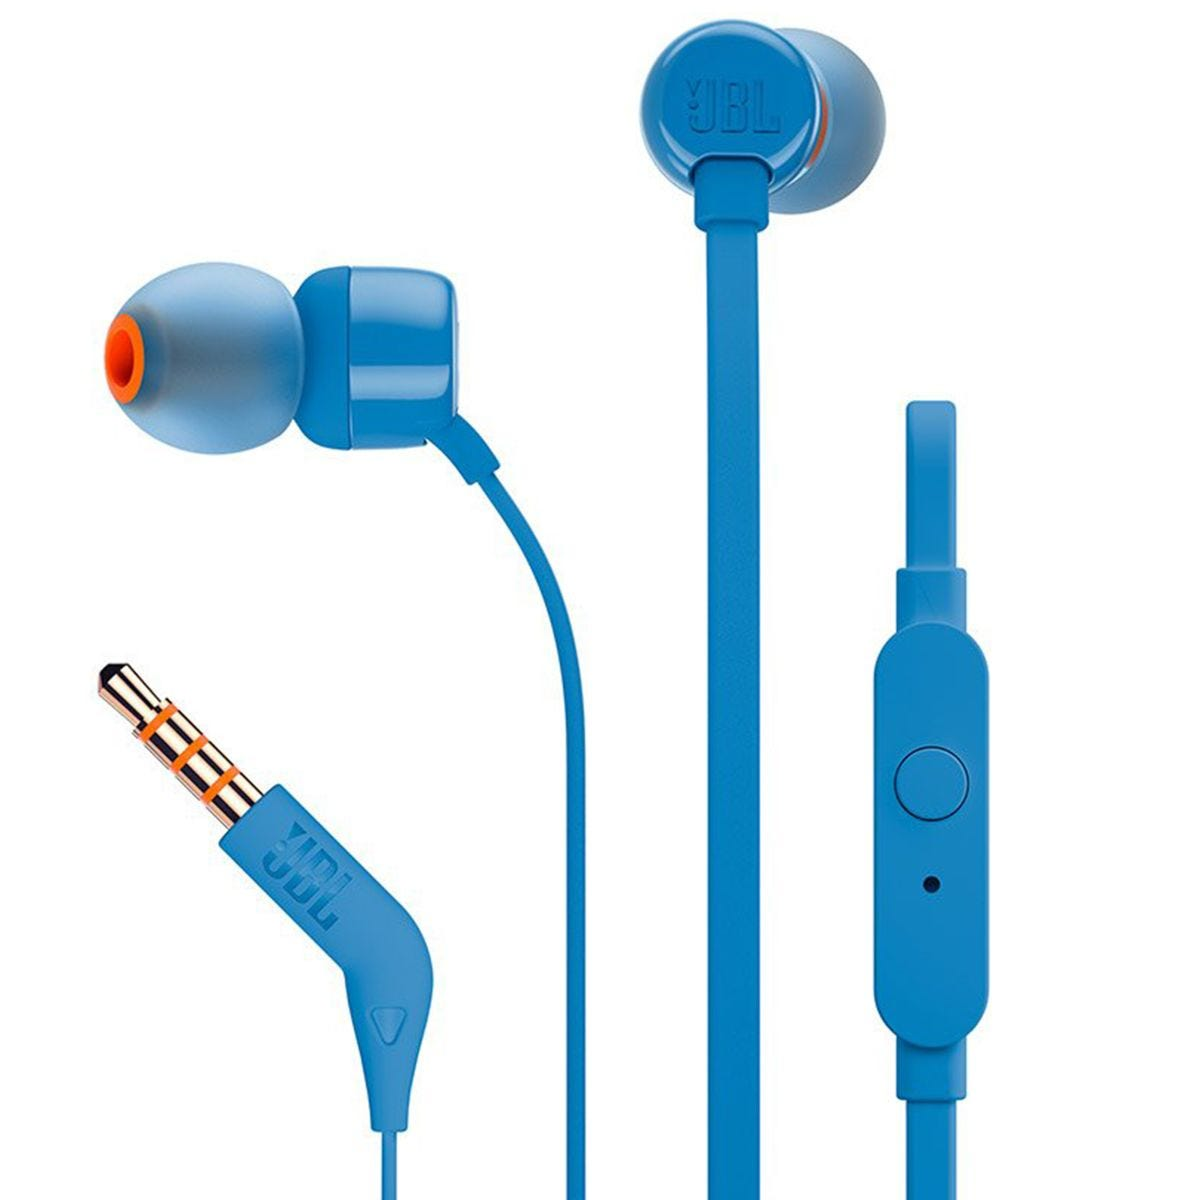 JBL T160 Tune Wired In-Ear Headphone with Mic - Blue